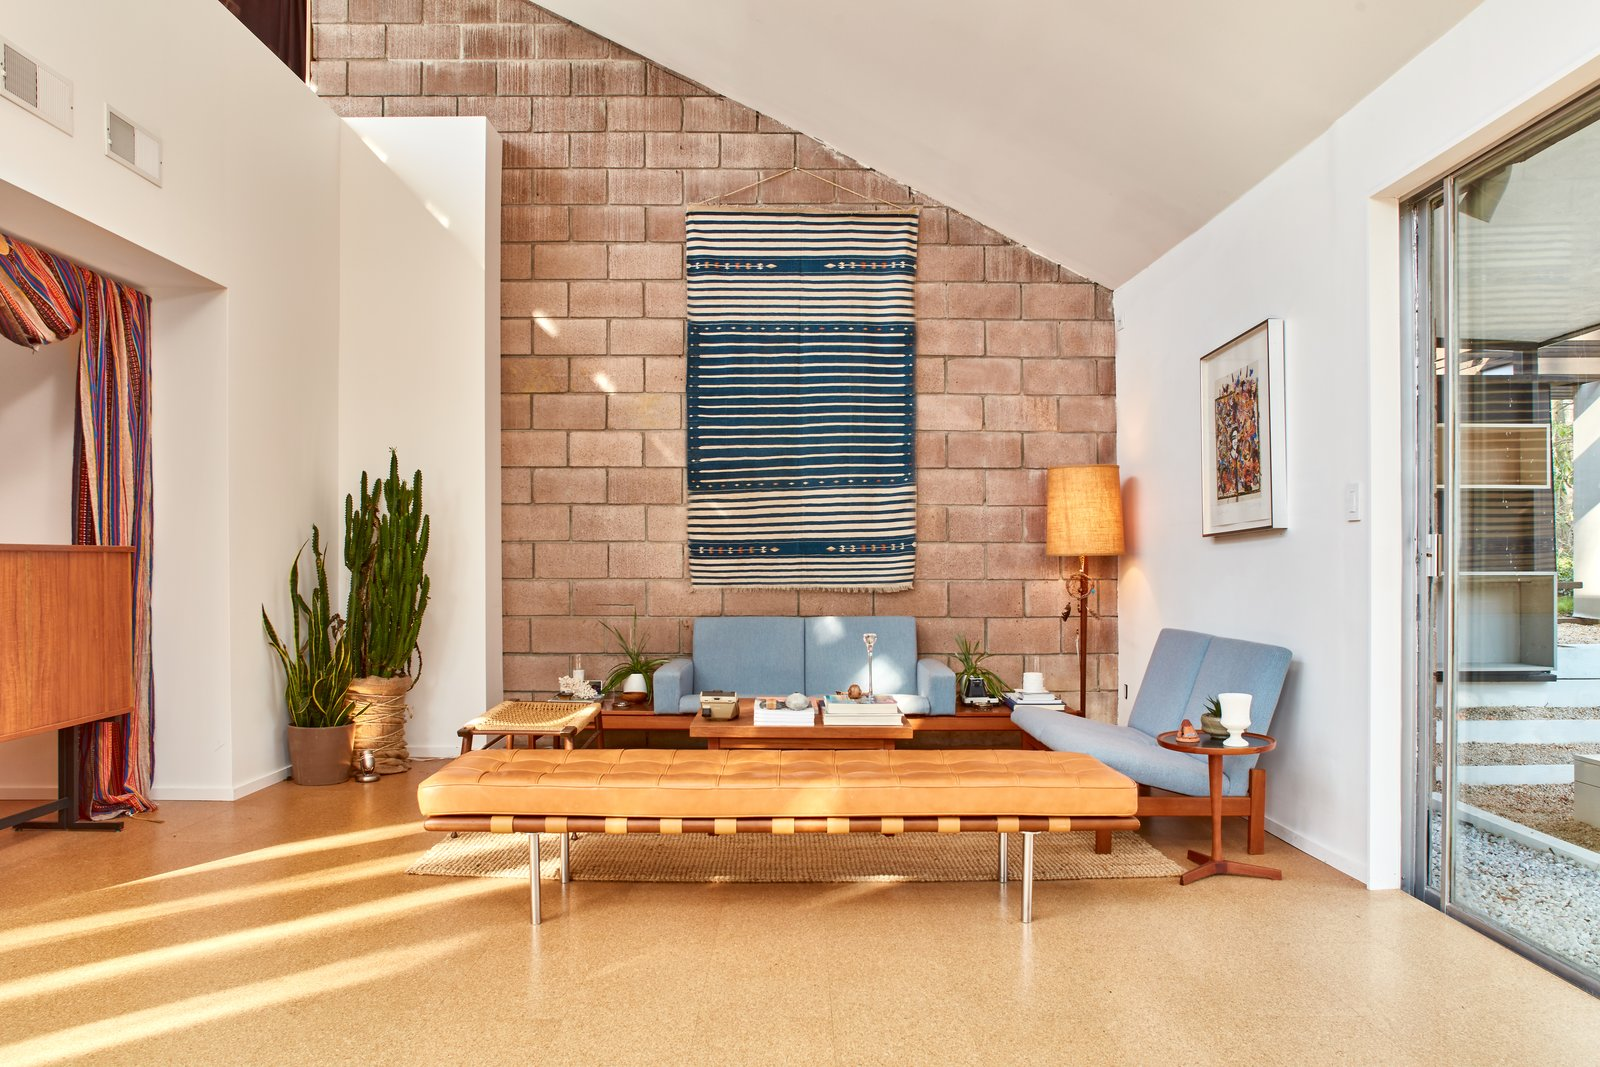 Living Room, Bench, Sofa, and Floor Lighting  Photo 4 of 13 in The Stunningly Restored Hassrick Residence by Richard Neutra Hits the Market at $2.2M